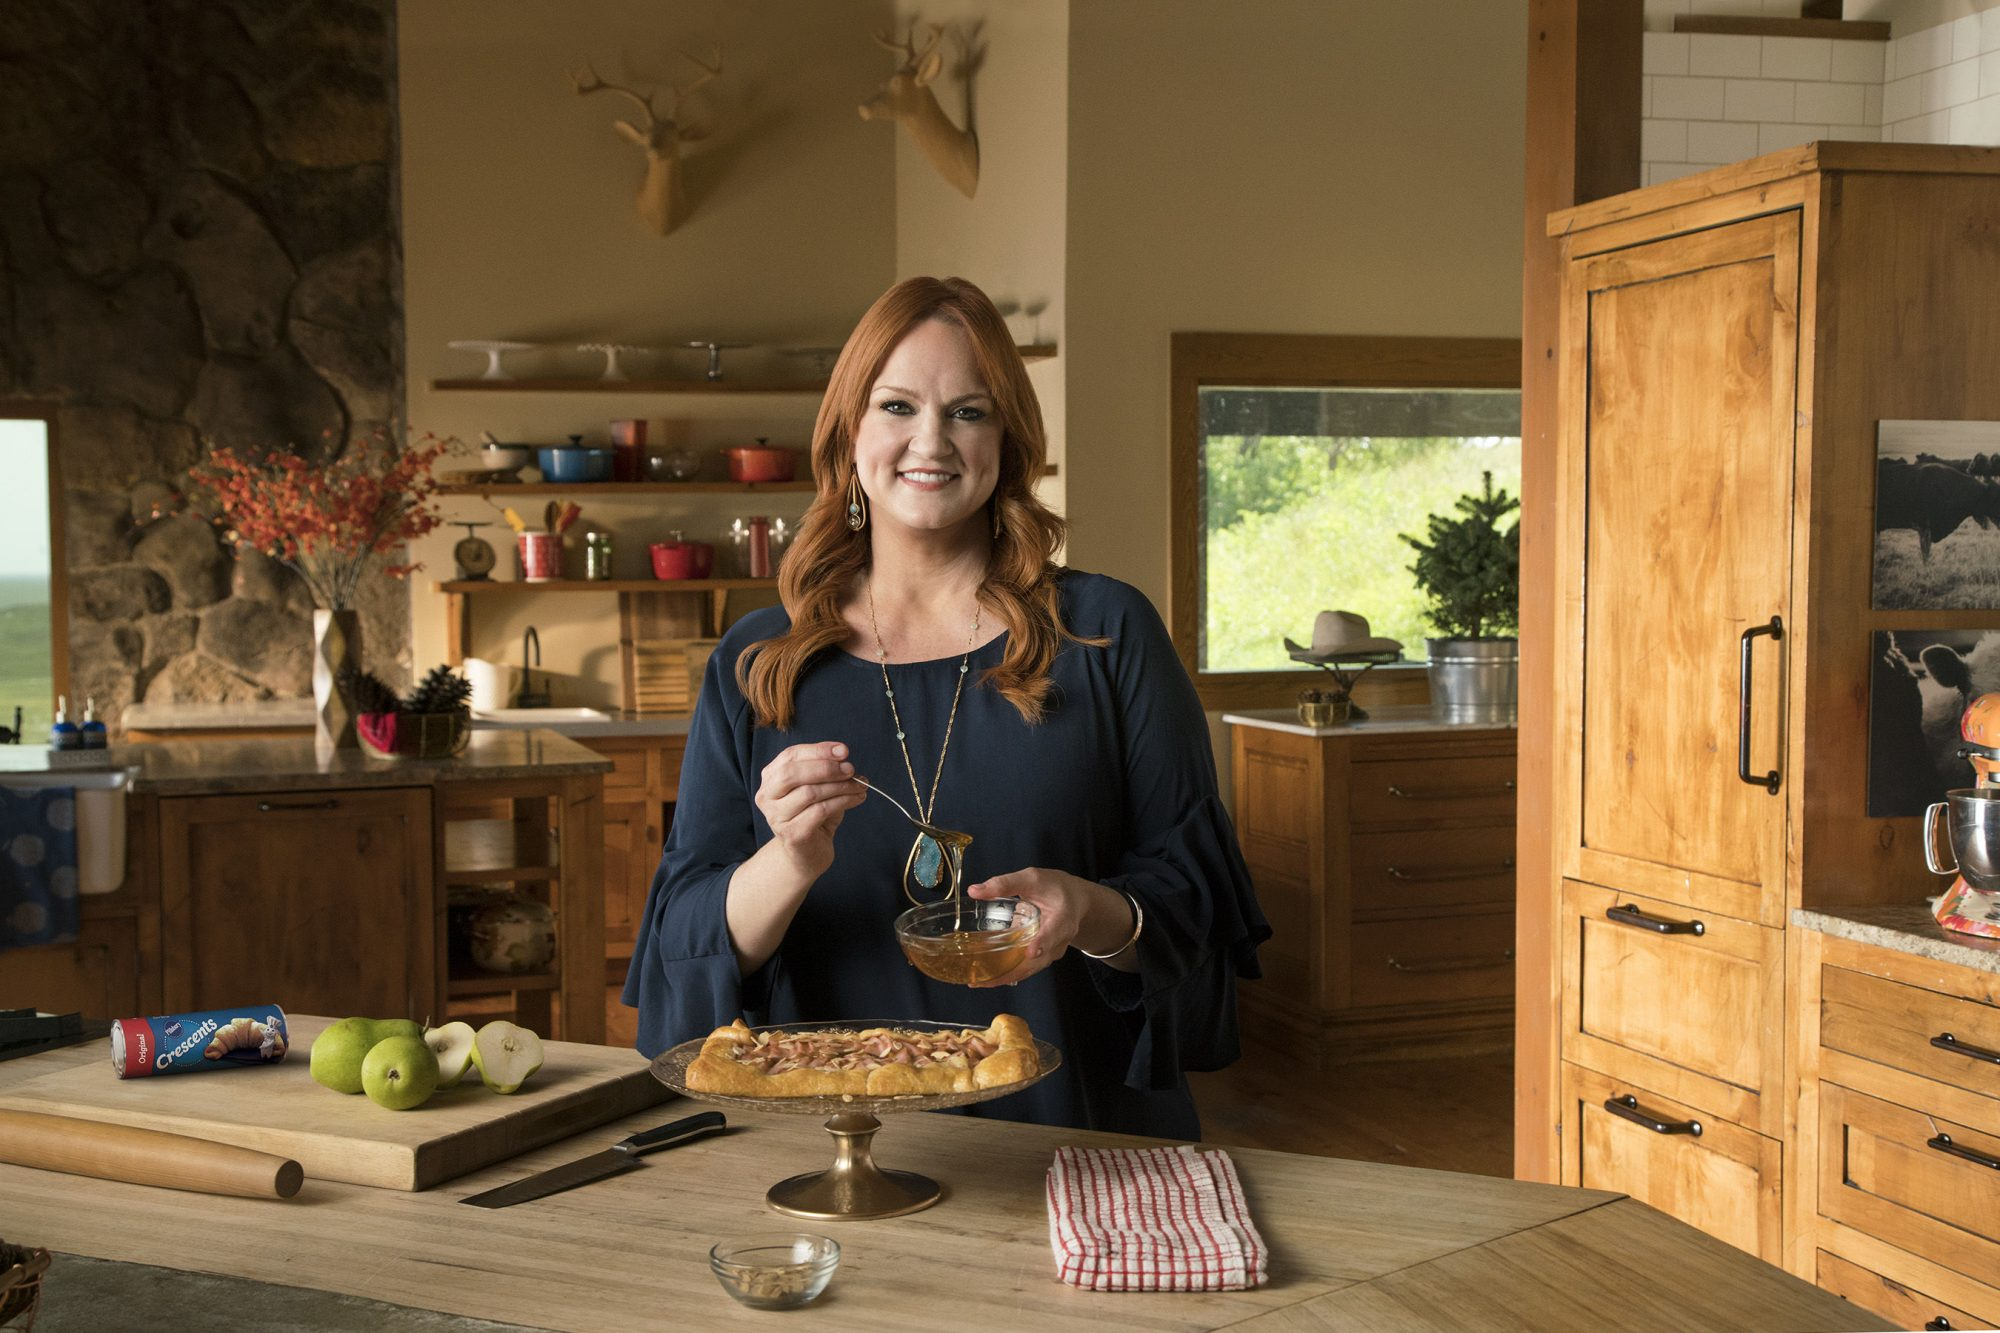 Ree Drummond Is Asking for Your Help with Her New Cookbook